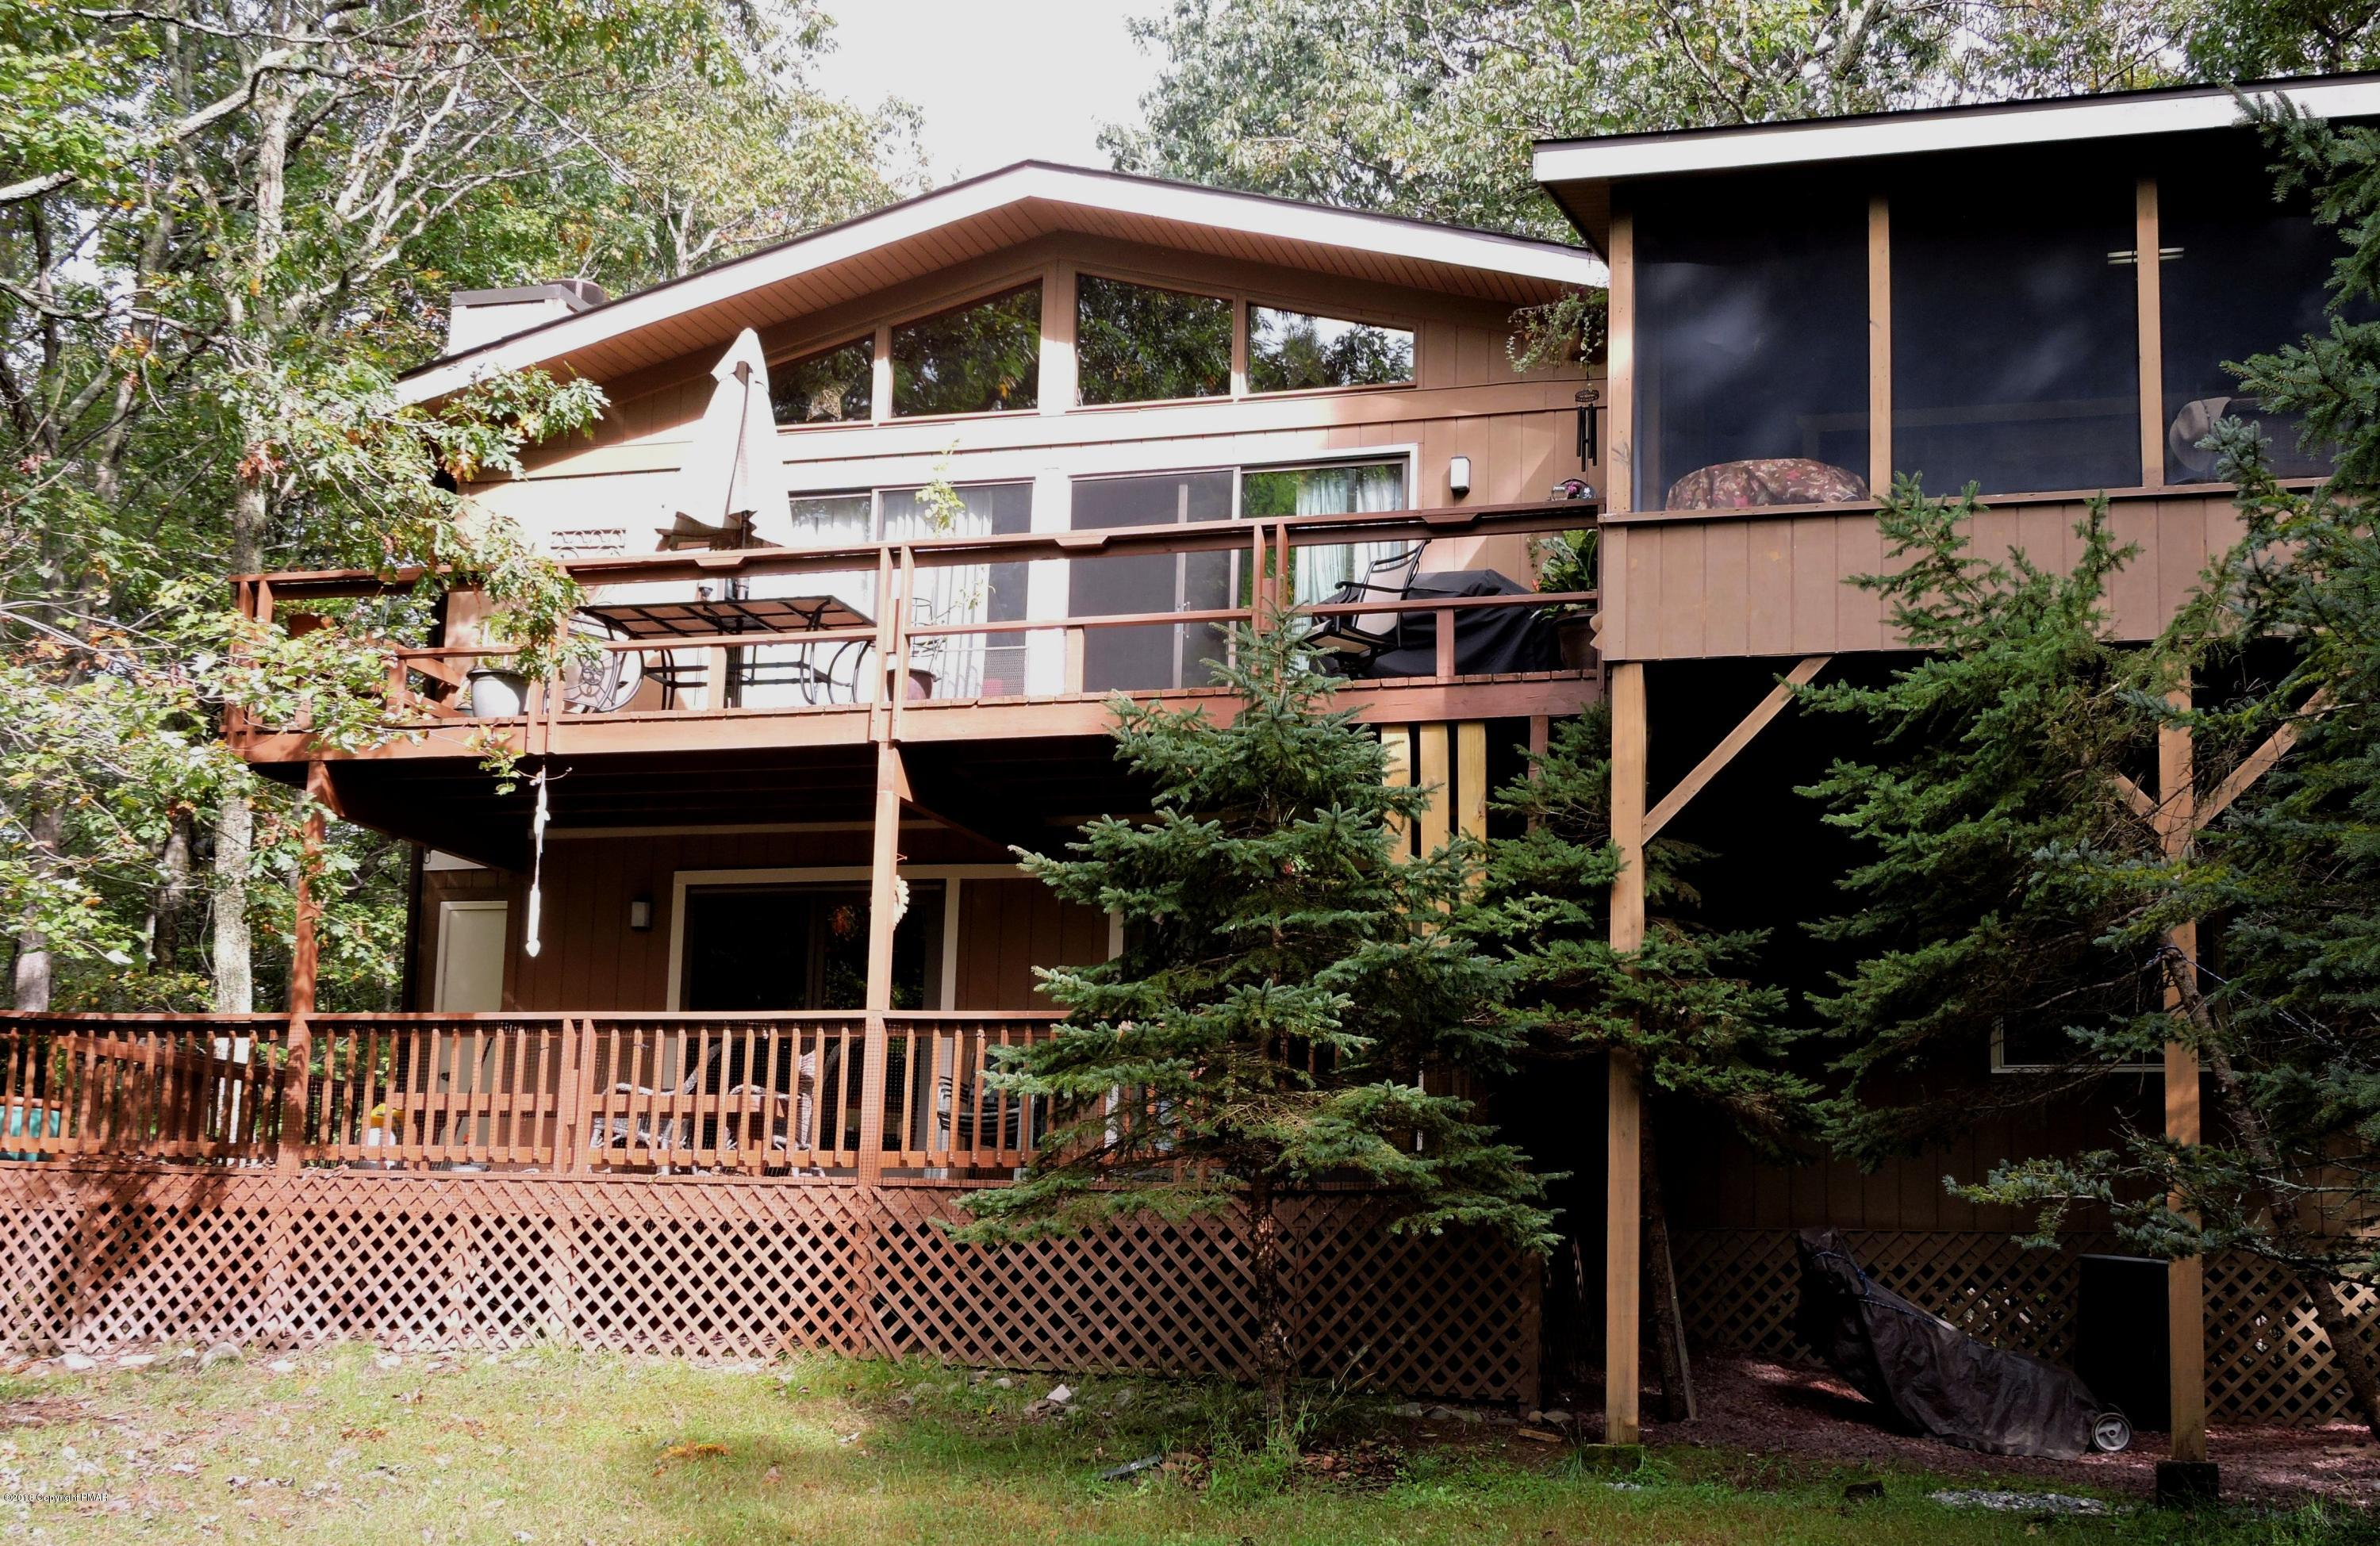 286 Forest Dr, Canadensis, PA 18325